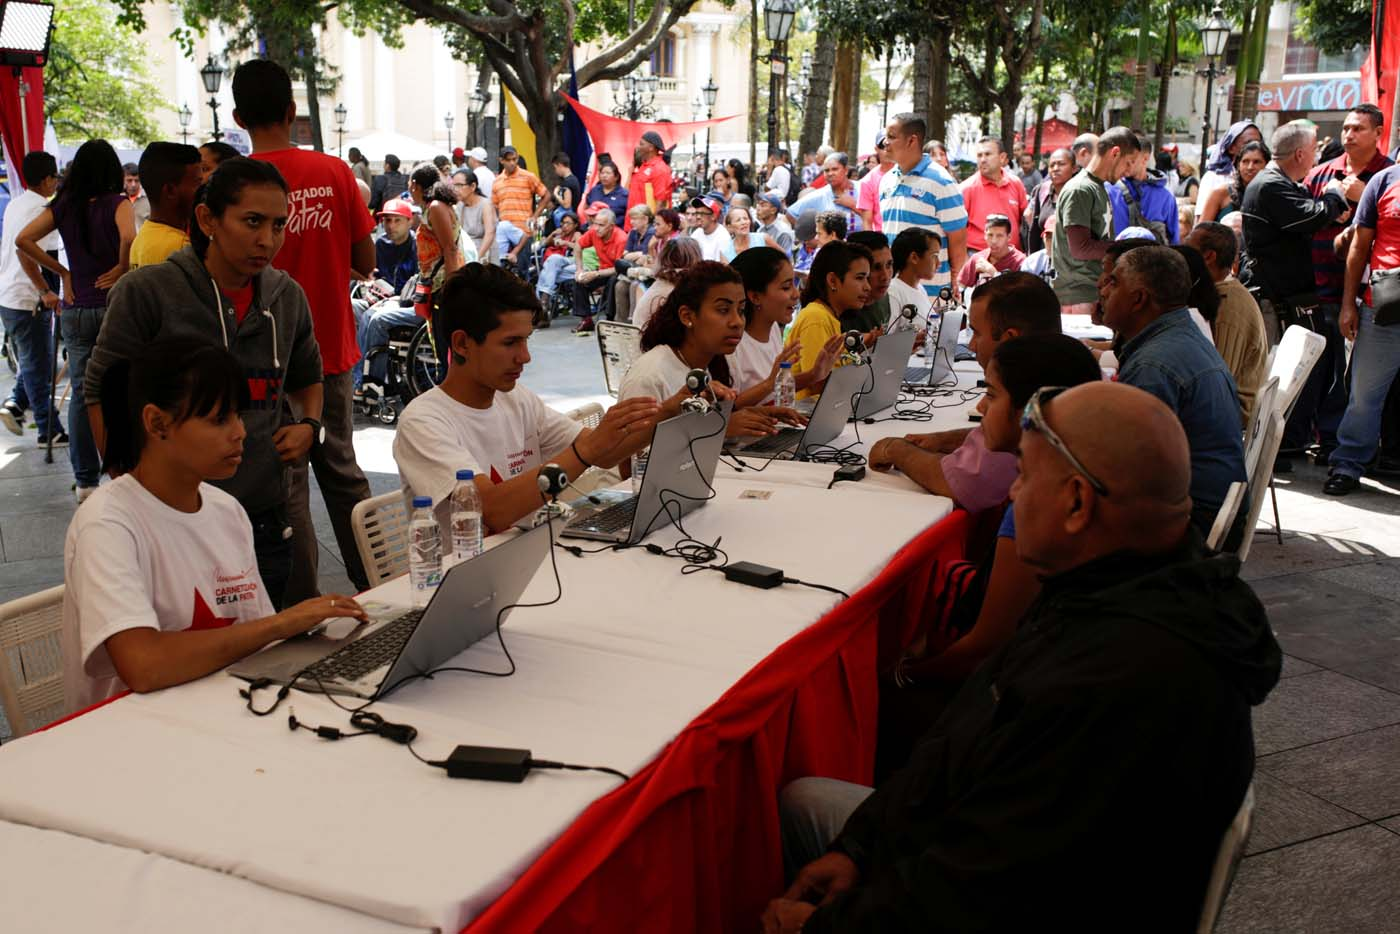 People apply for a card that will register them for government social programmes, in Caracas, Venezuela January 20, 2017. REUTERS/Marco Bello